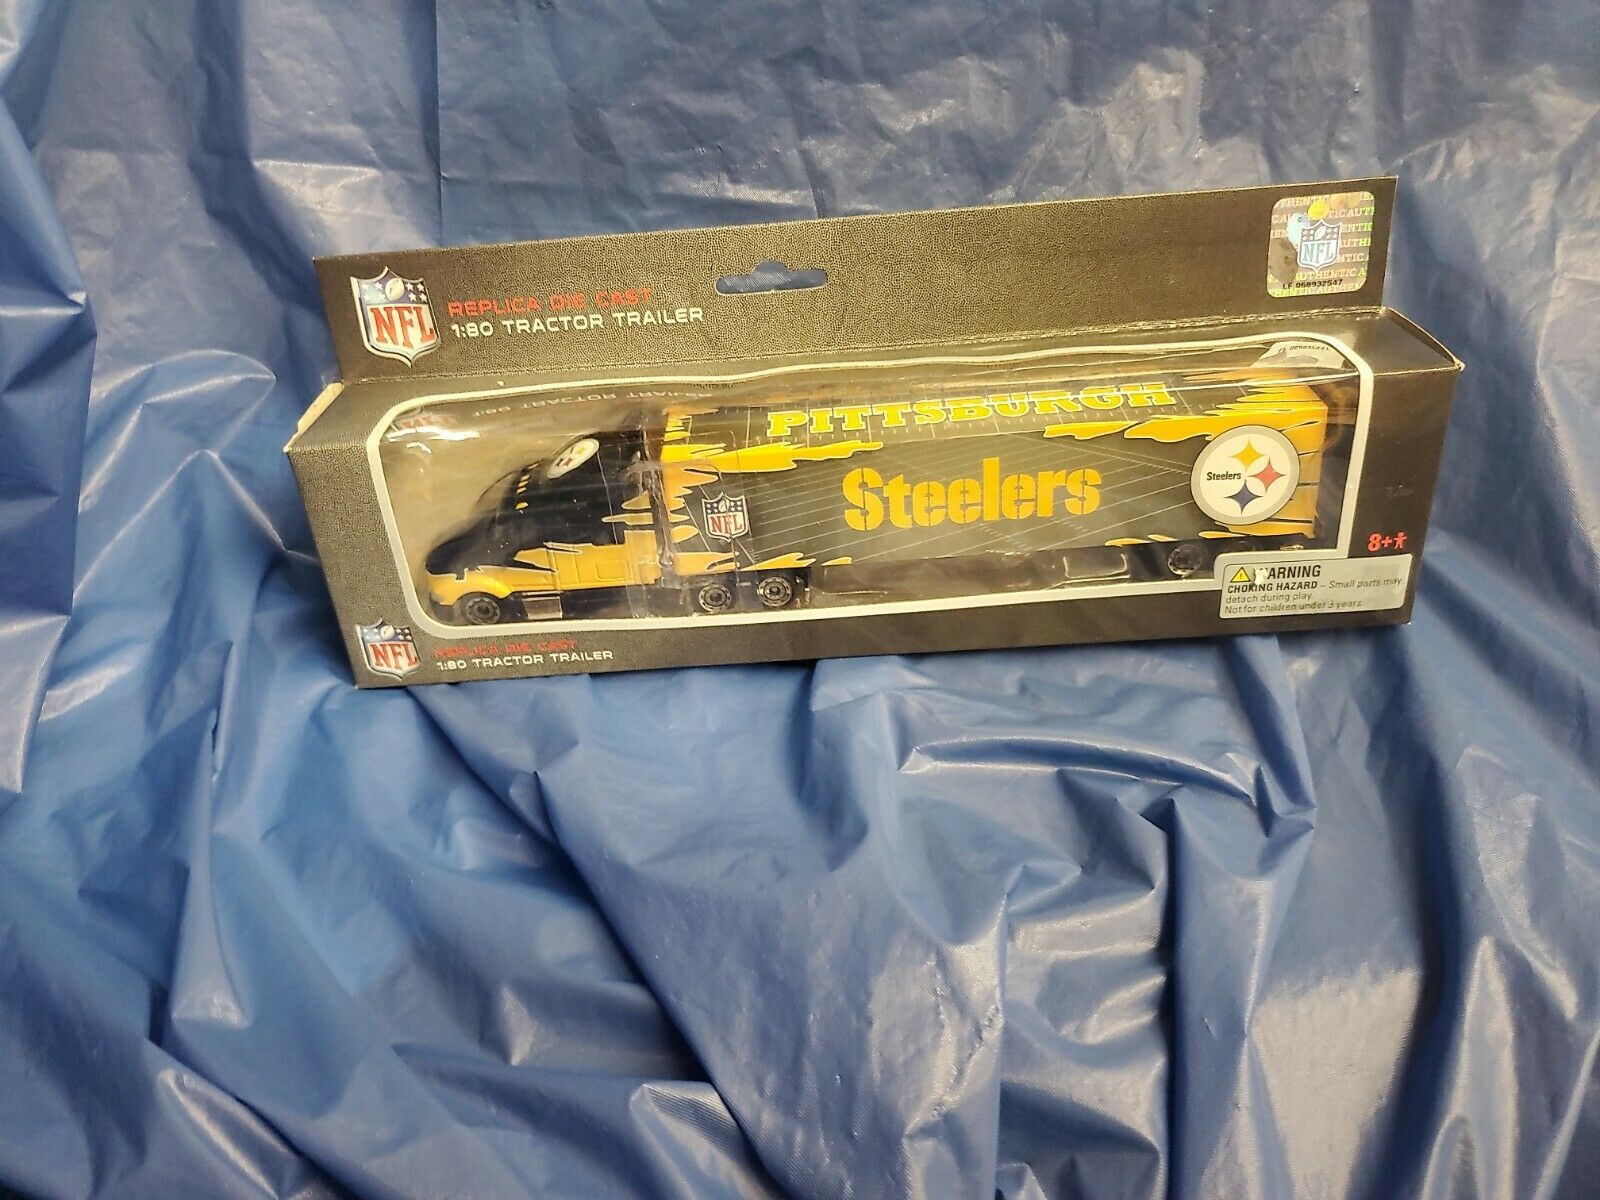 STEELERS DIE CAST TRACTOR TRAILER 2009 PRESSPASS NEW IN BOX